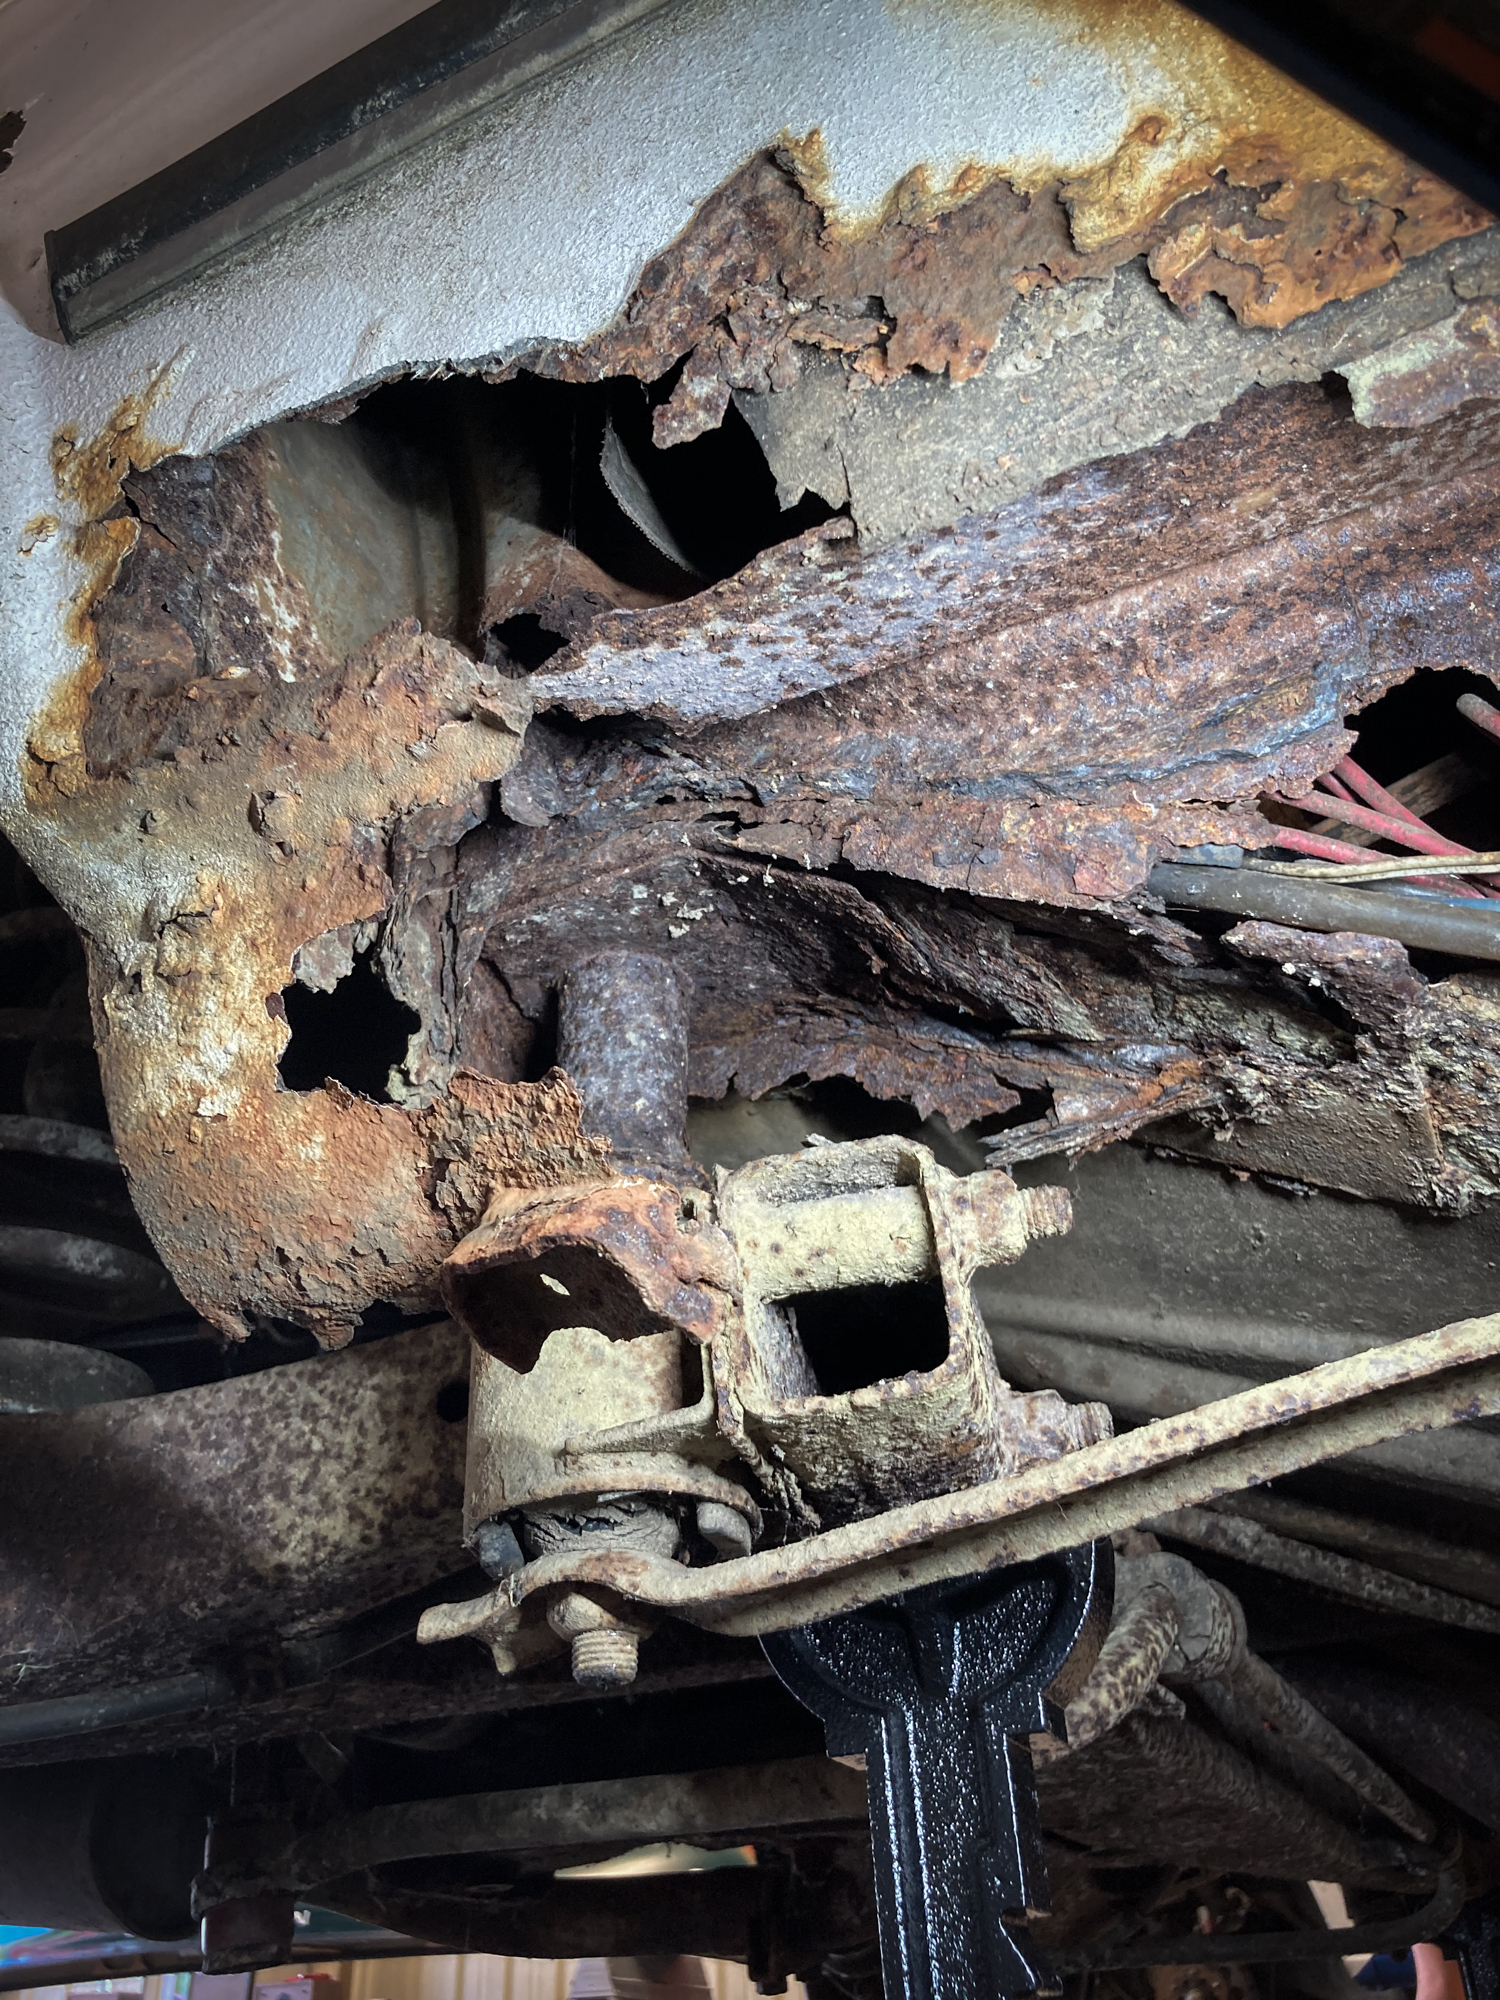 bmw 2002 project car rust rot